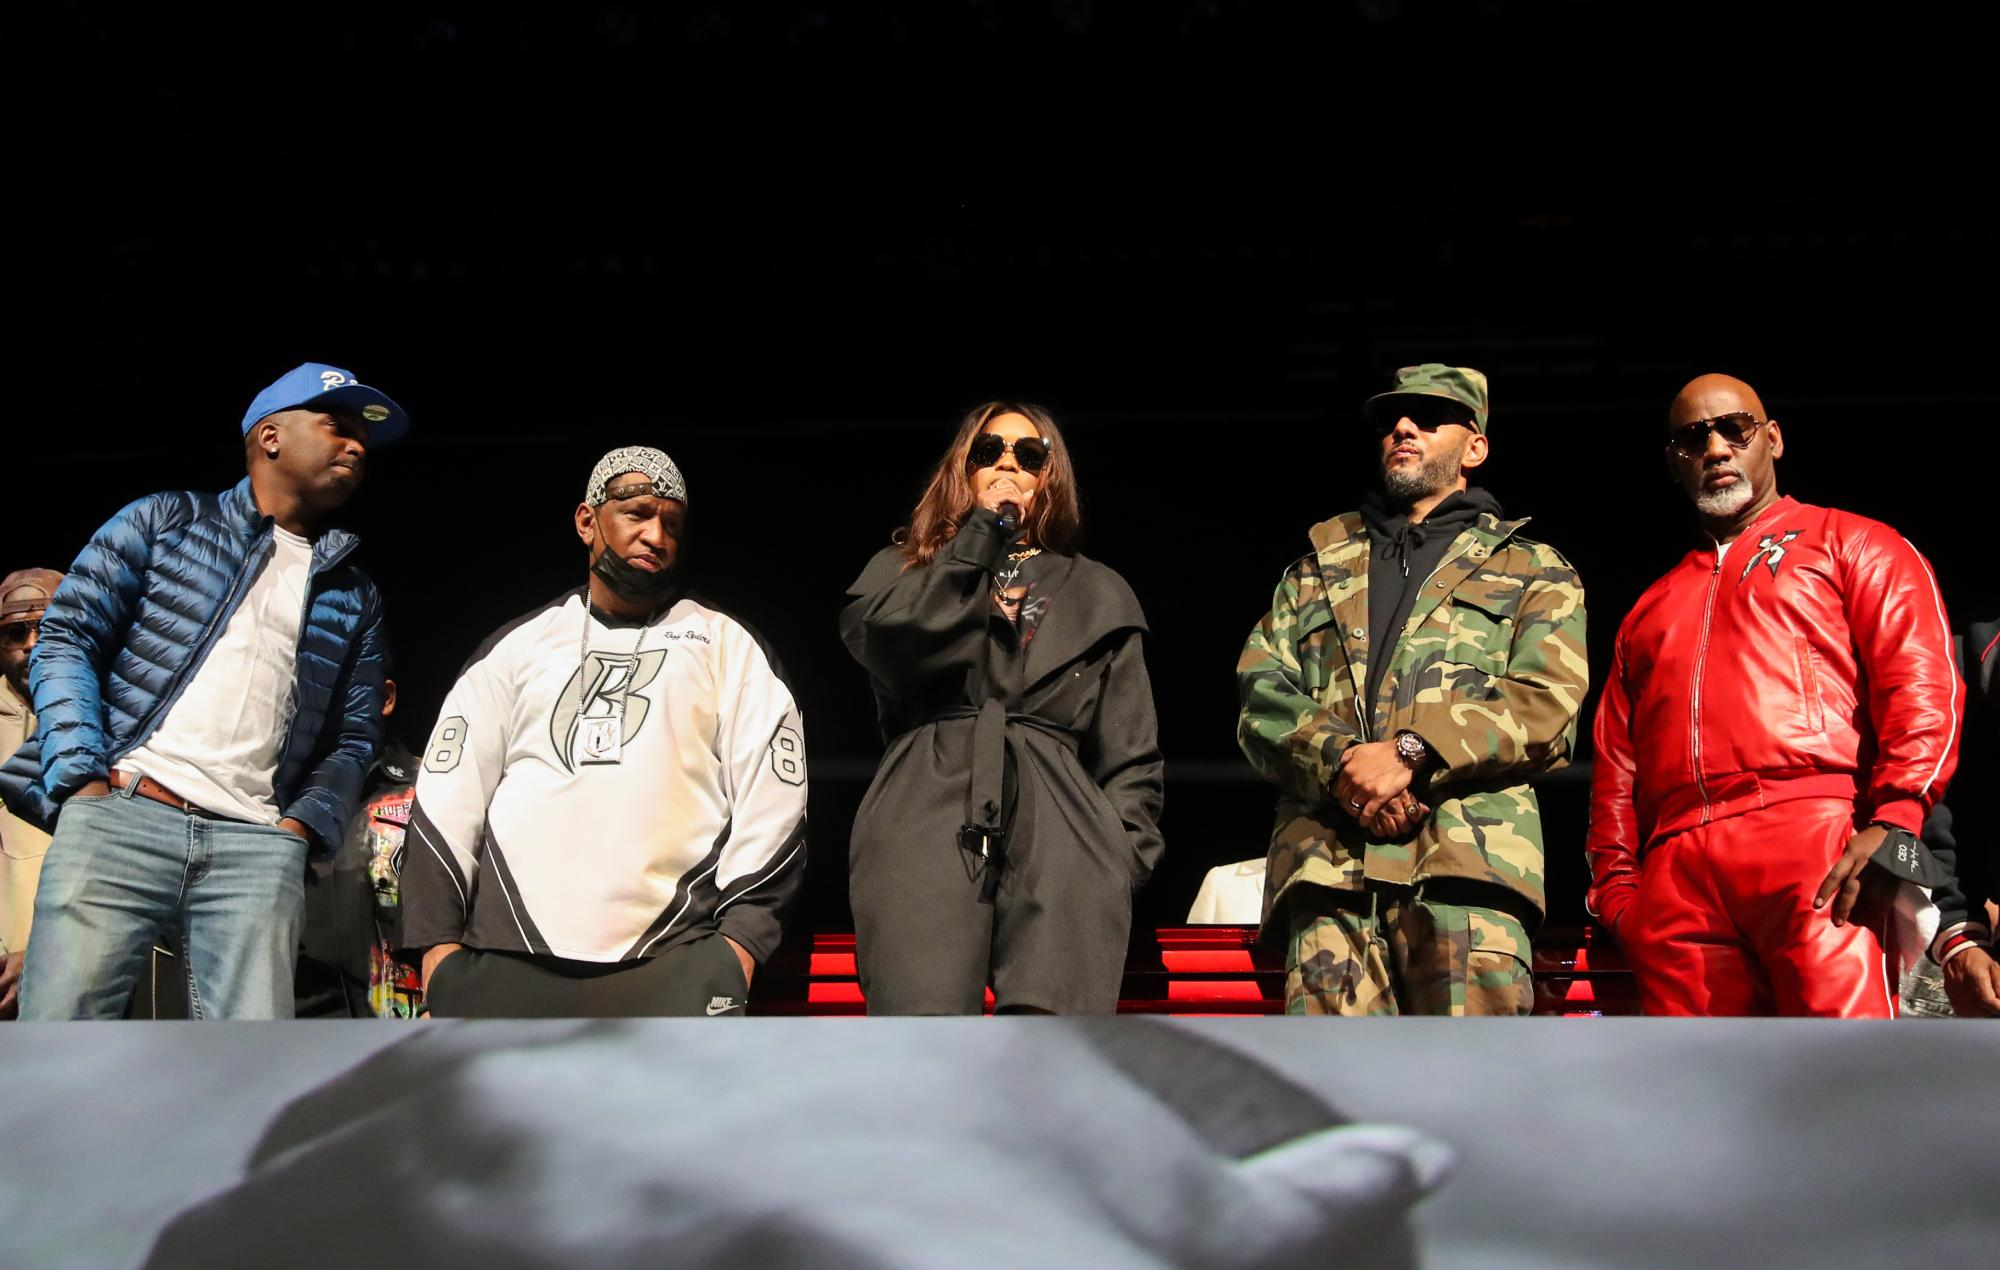 """Nas, Eve and Swizz Beats pay tribute to """"brother"""" DMX at memorial service, daughter raps 'Slippin'"""